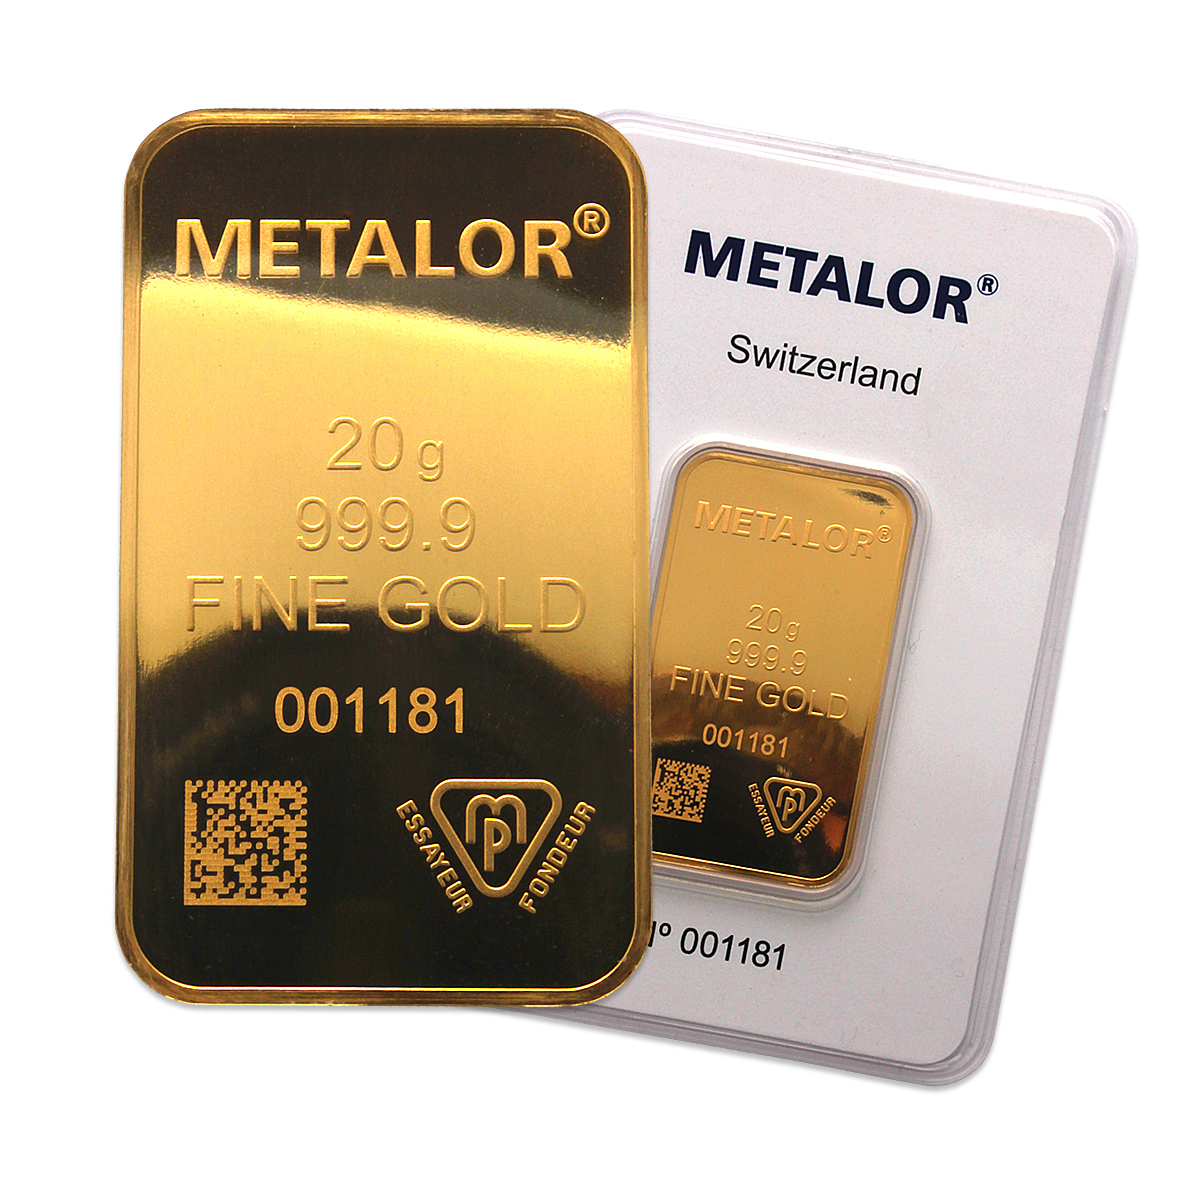 Metalor 20g Gold Bar 20 Gram Gold Bullion Bars Gold